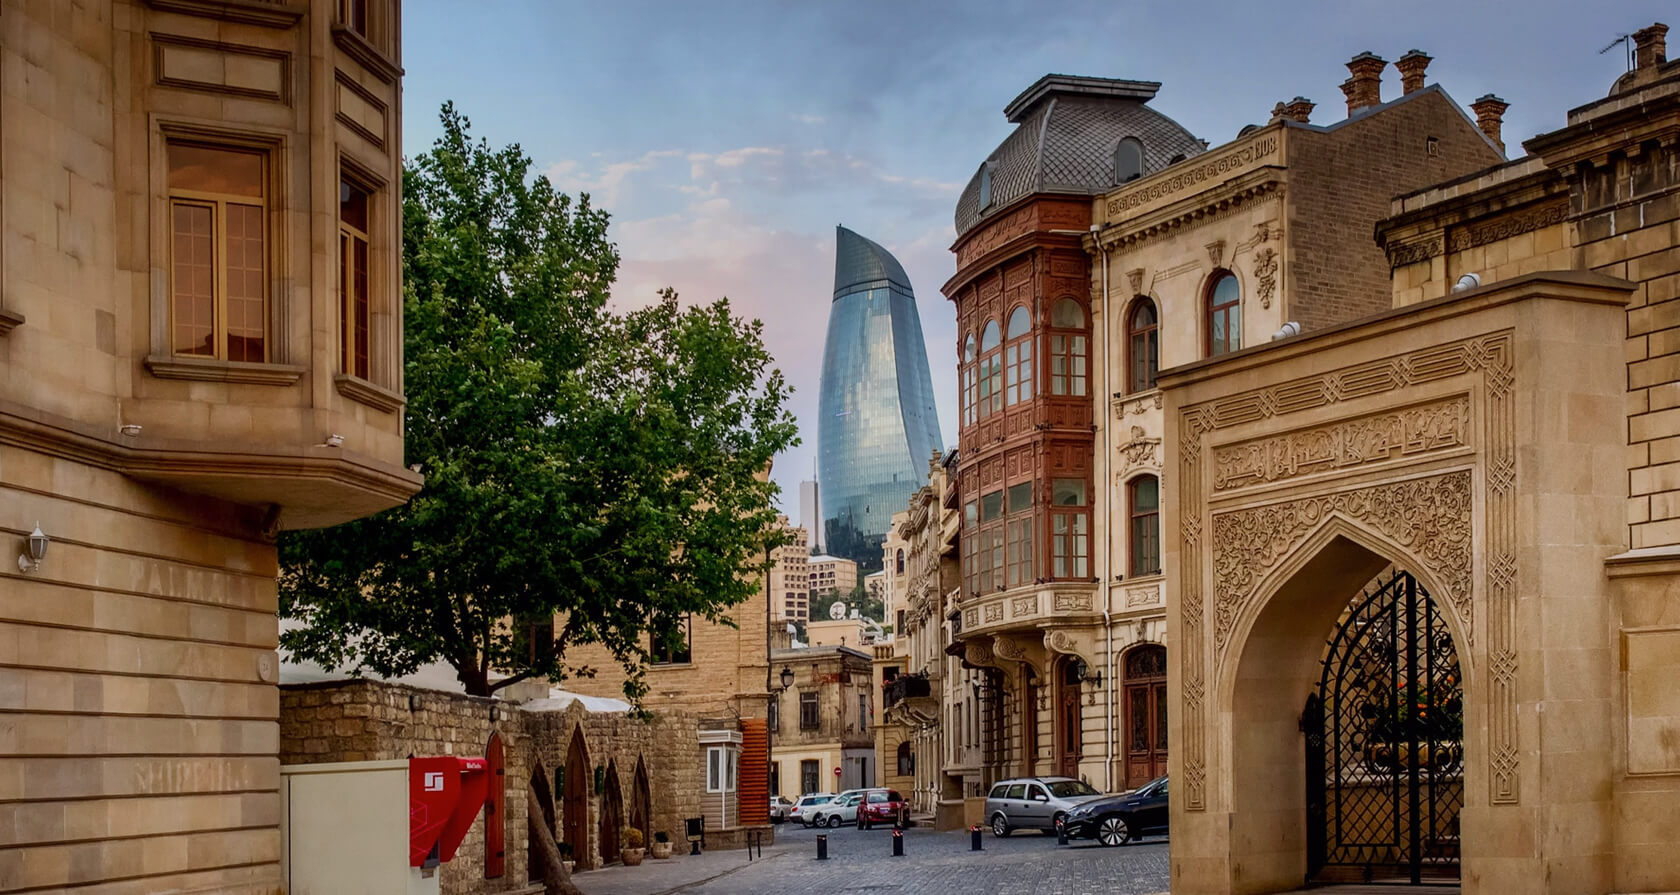 Baku - The Land of Fire